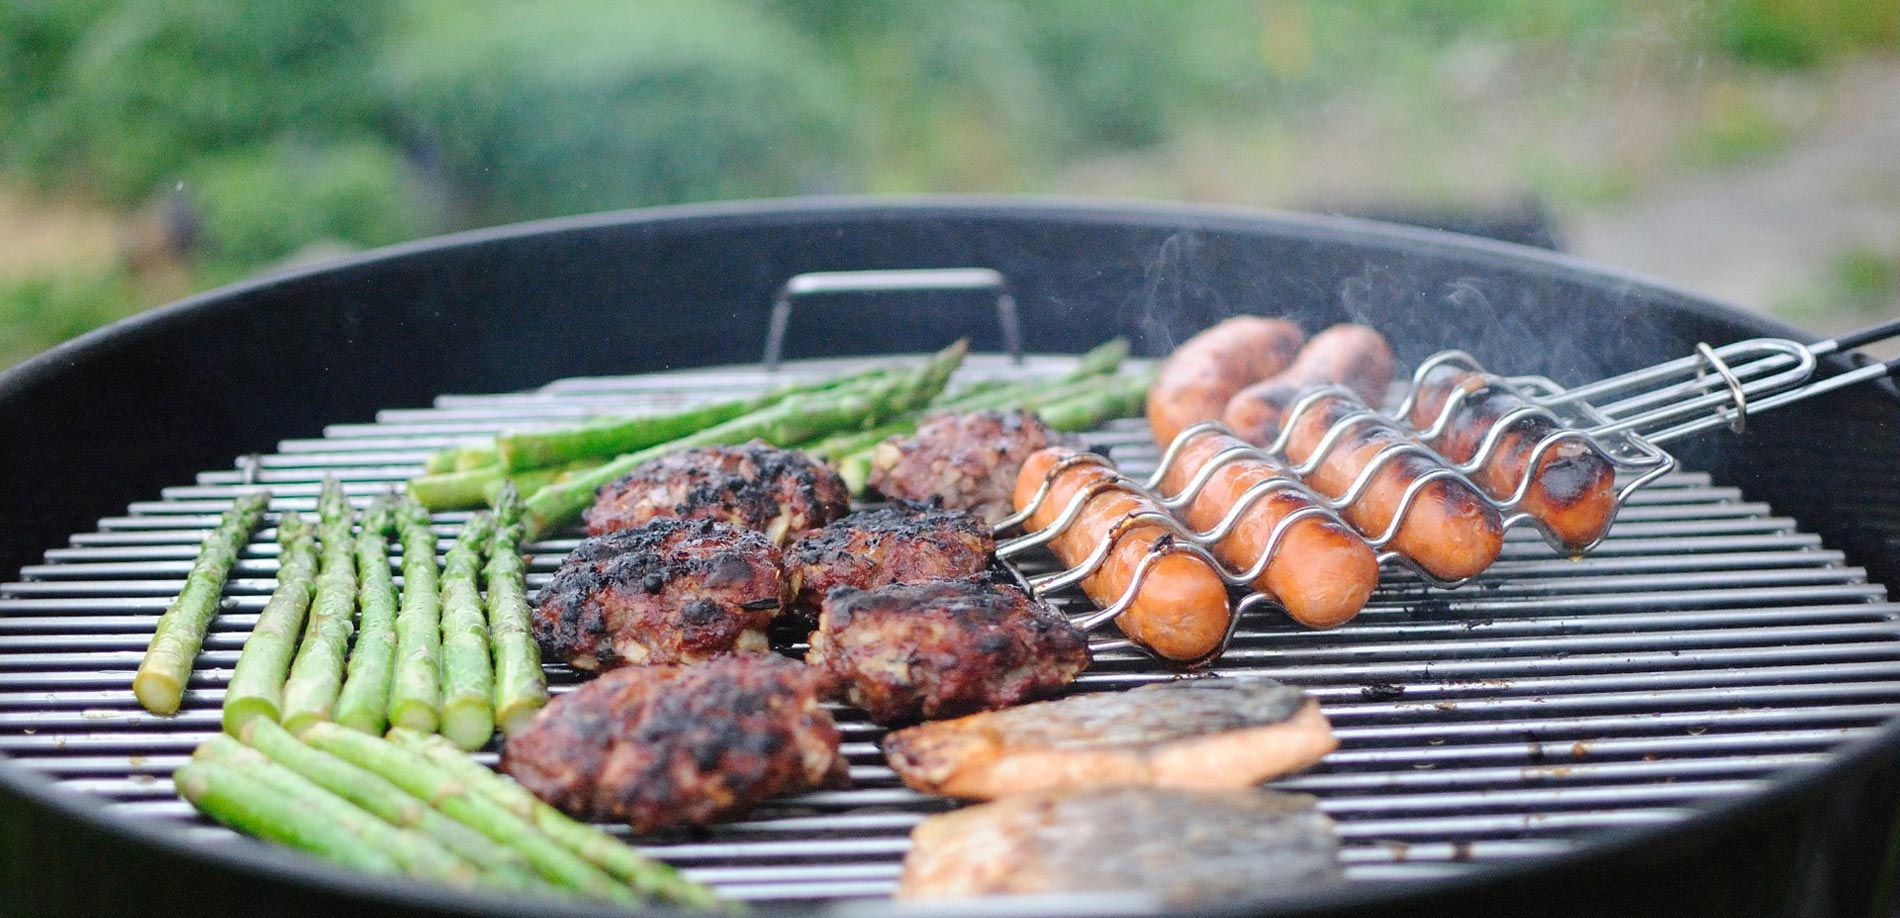 Grilling veggies and meats